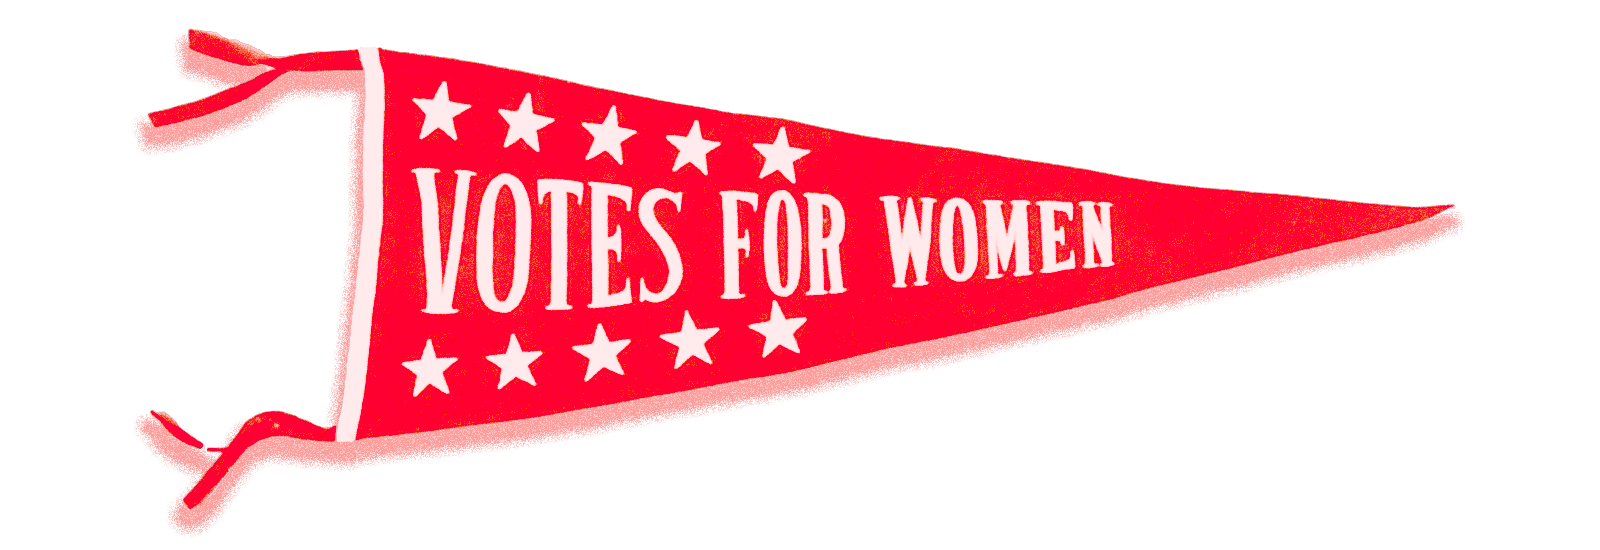 voters-sexist-16x9-white-banner_1.png